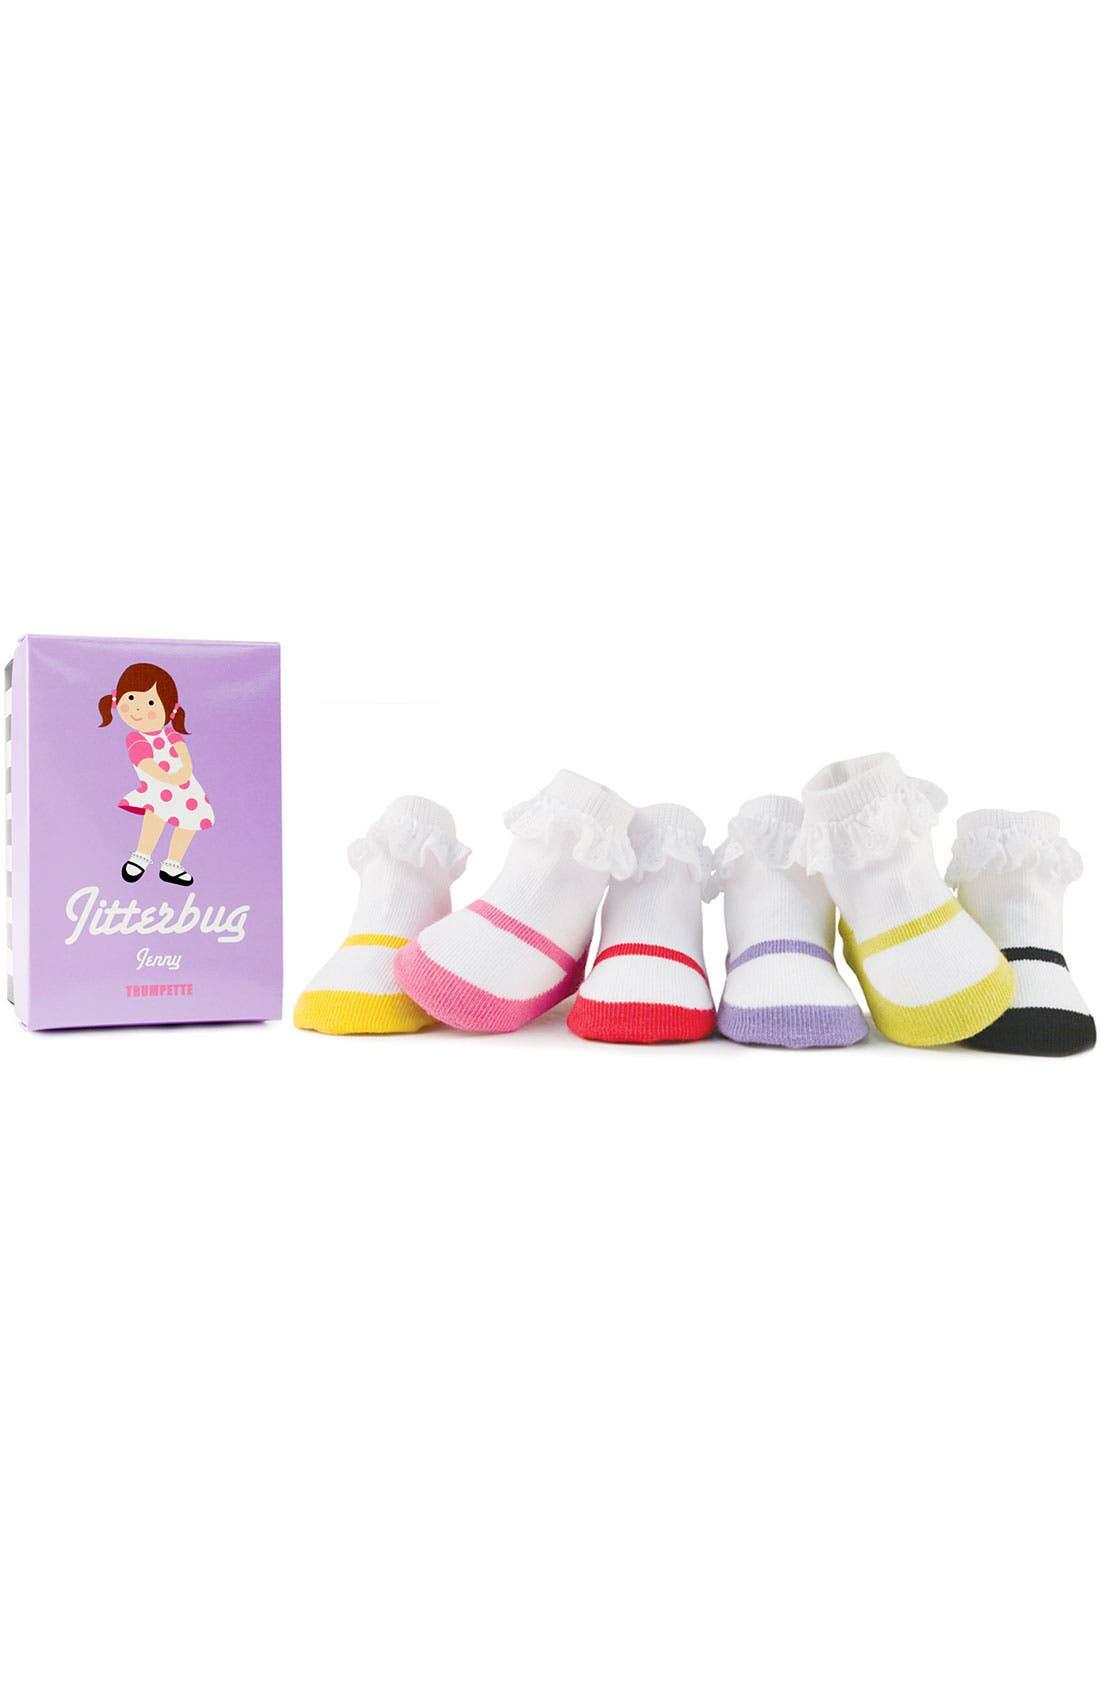 Alternate Image 1 Selected - Trumpette 'Jitterbug' Socks (6-Pack) (Infant)